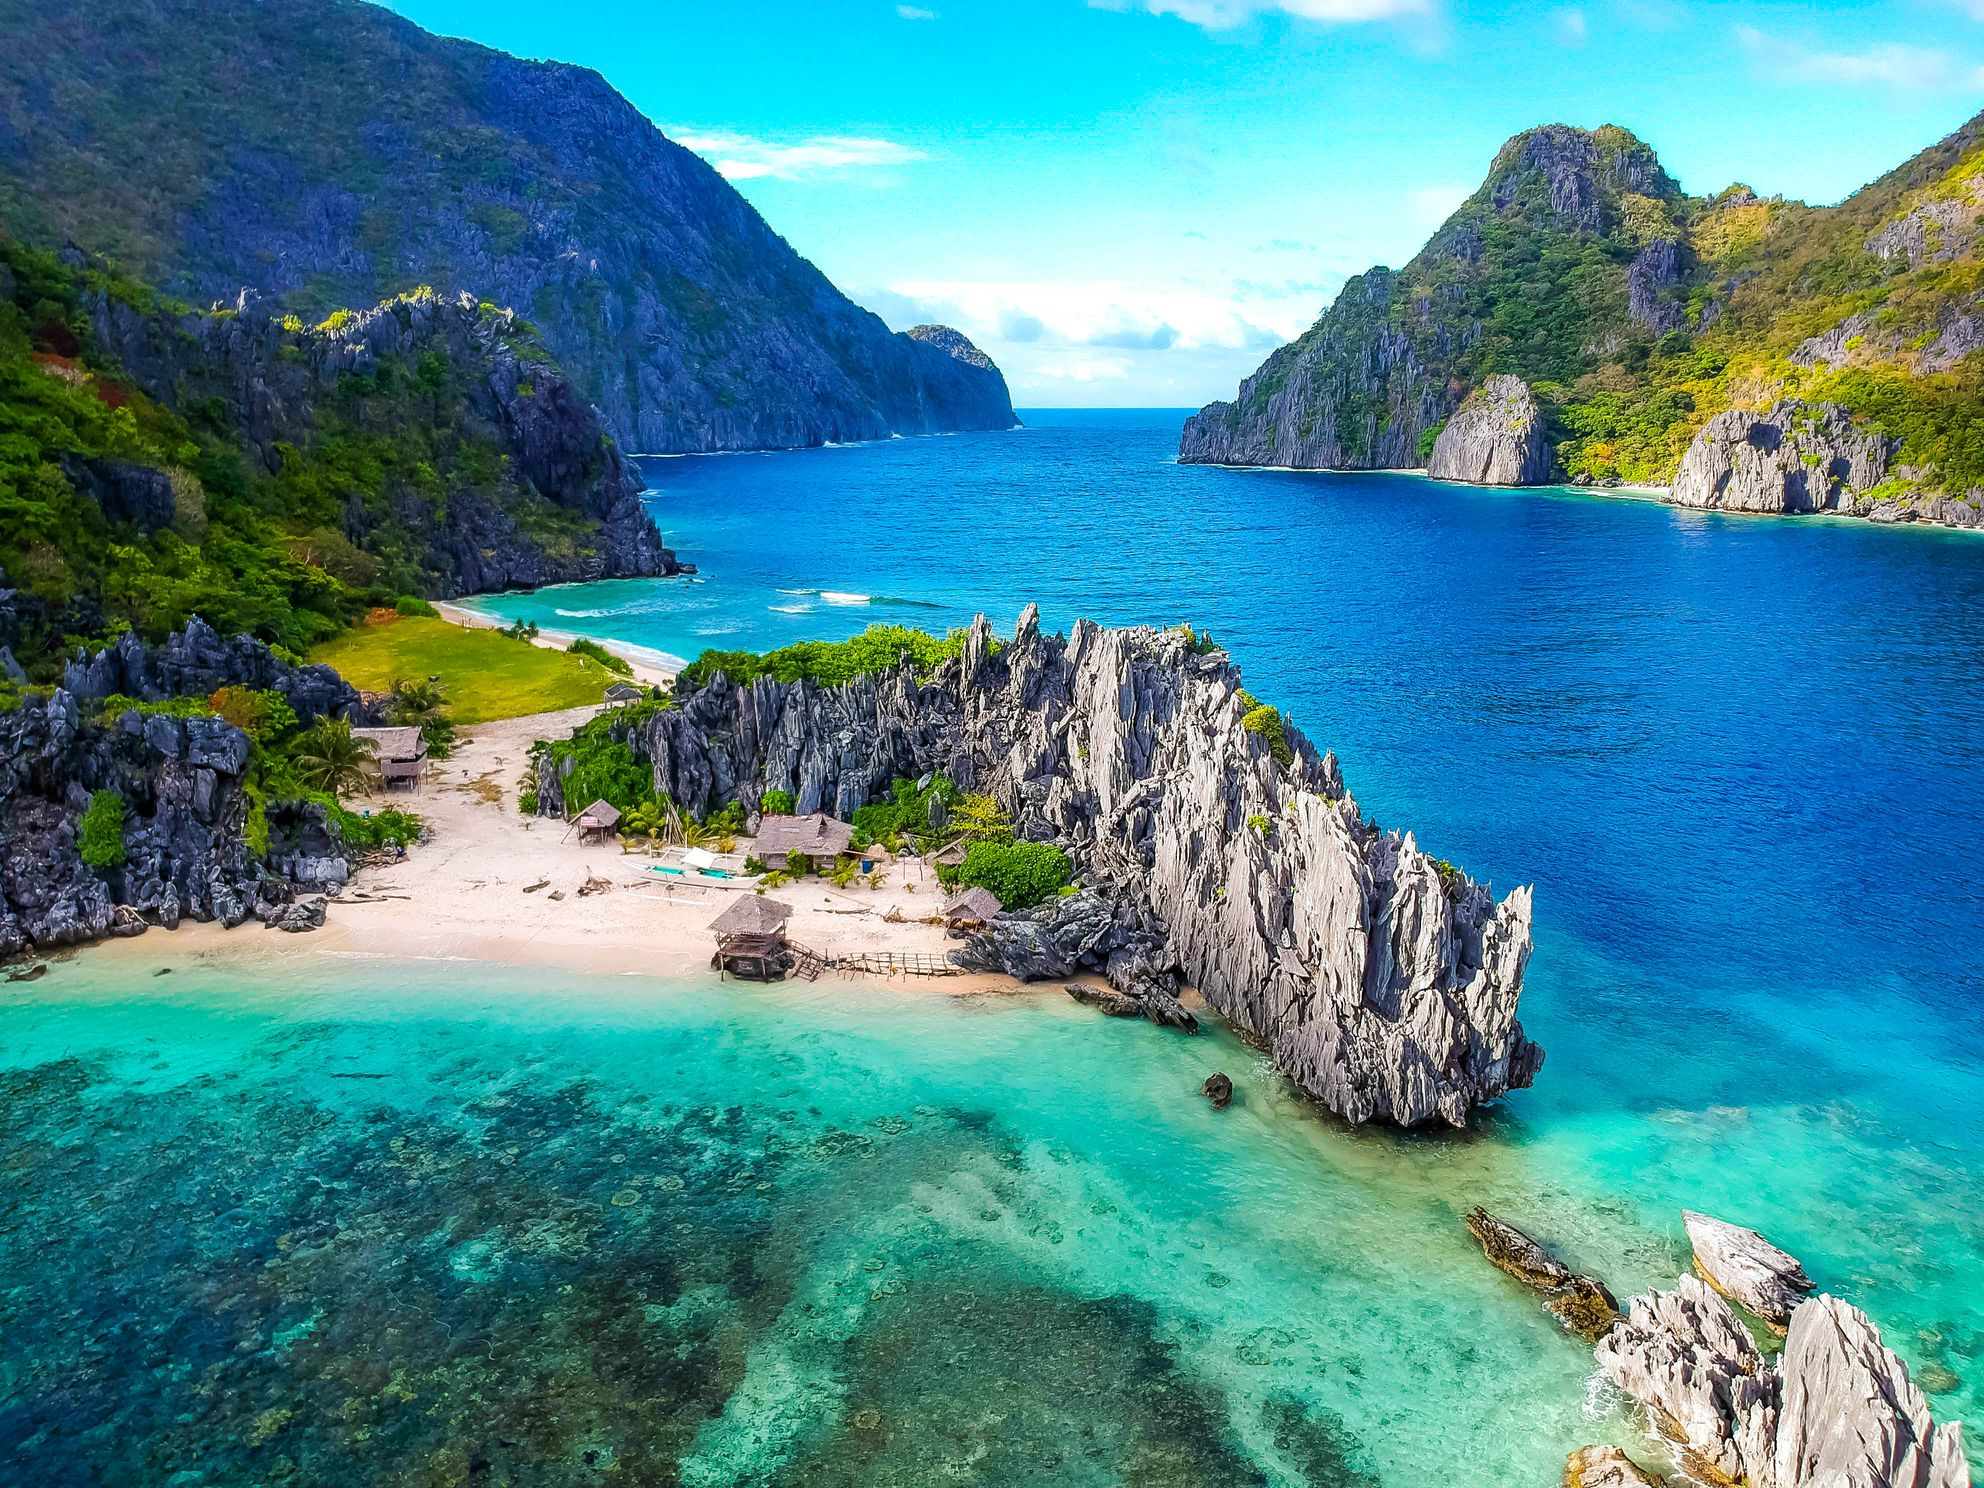 Aerial view of islands with white sand beaches, limestone cliffs, green mountains amidst blue and turquoise waters in El Nido, Palawan, Philippines